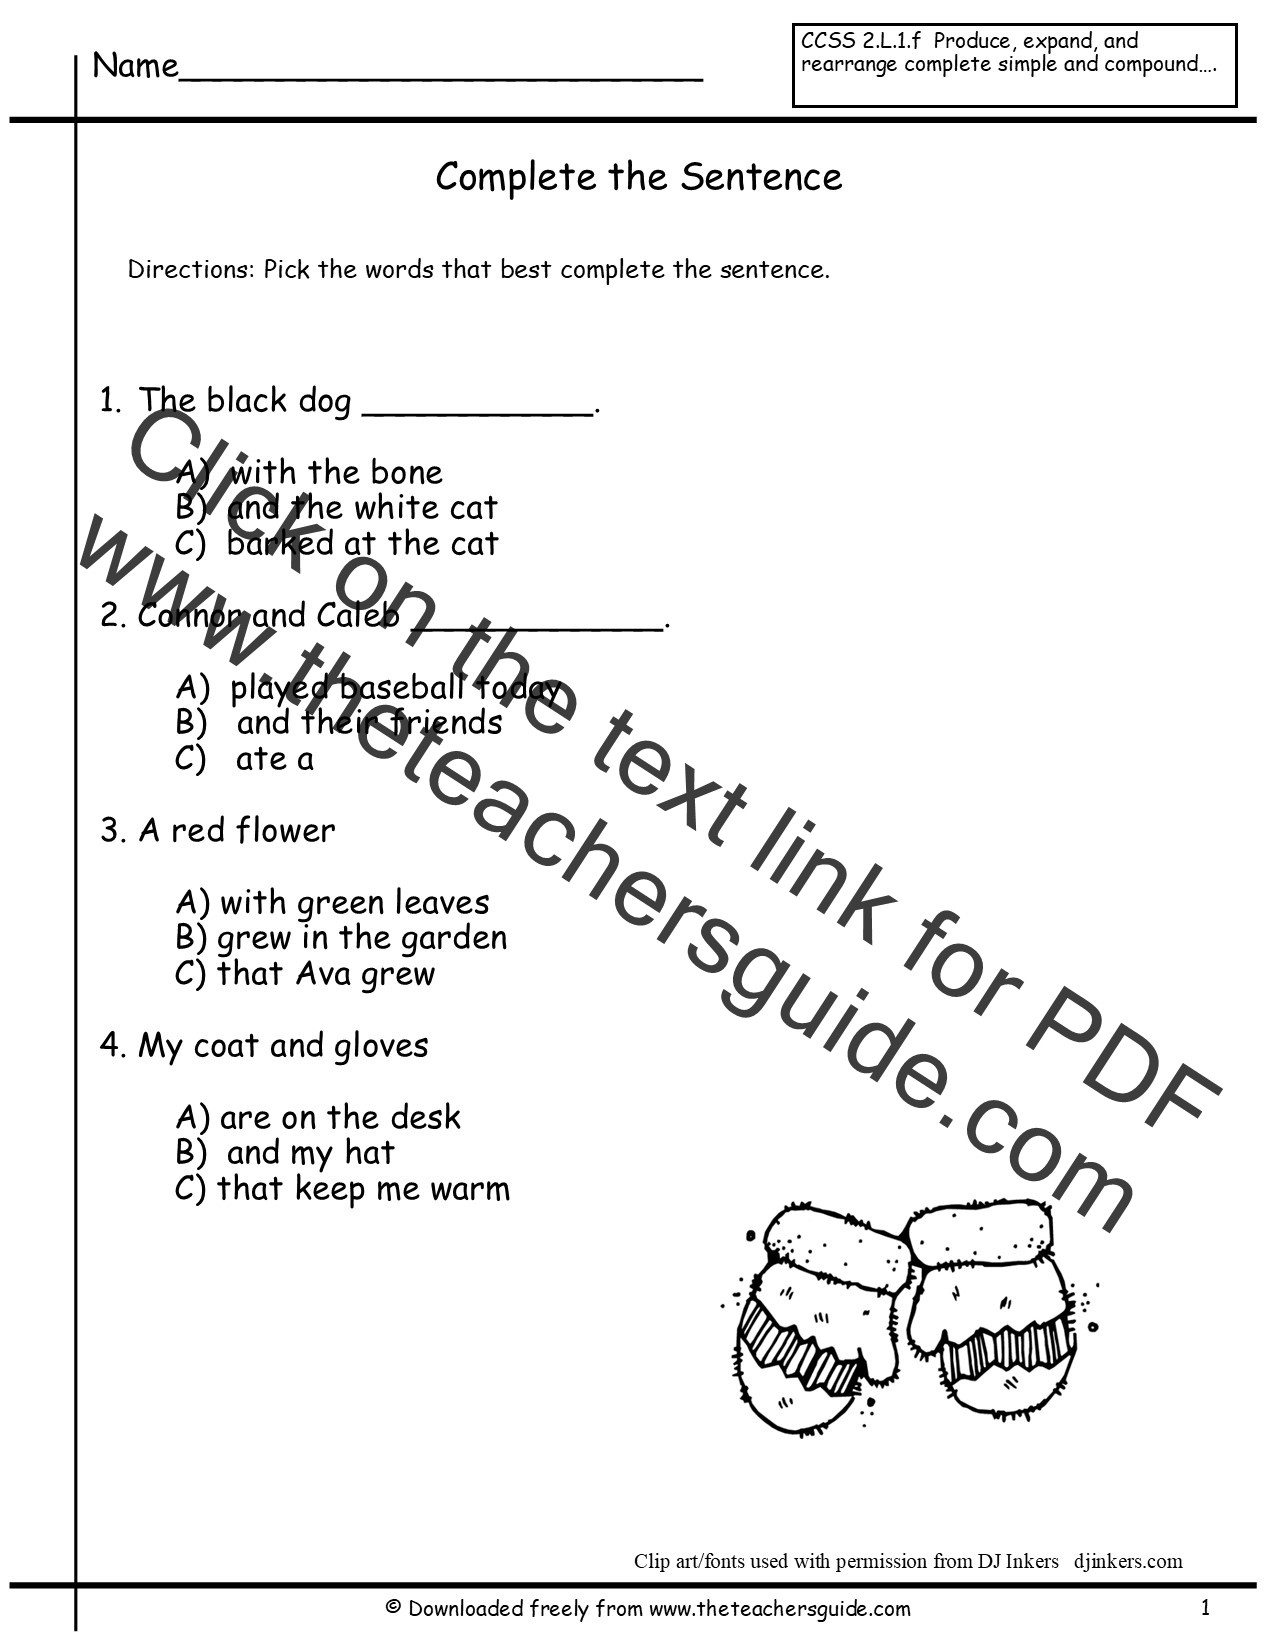 Complete Sentence Worksheet 3rd Grade 1st Grade Sentence Correction Worksheets